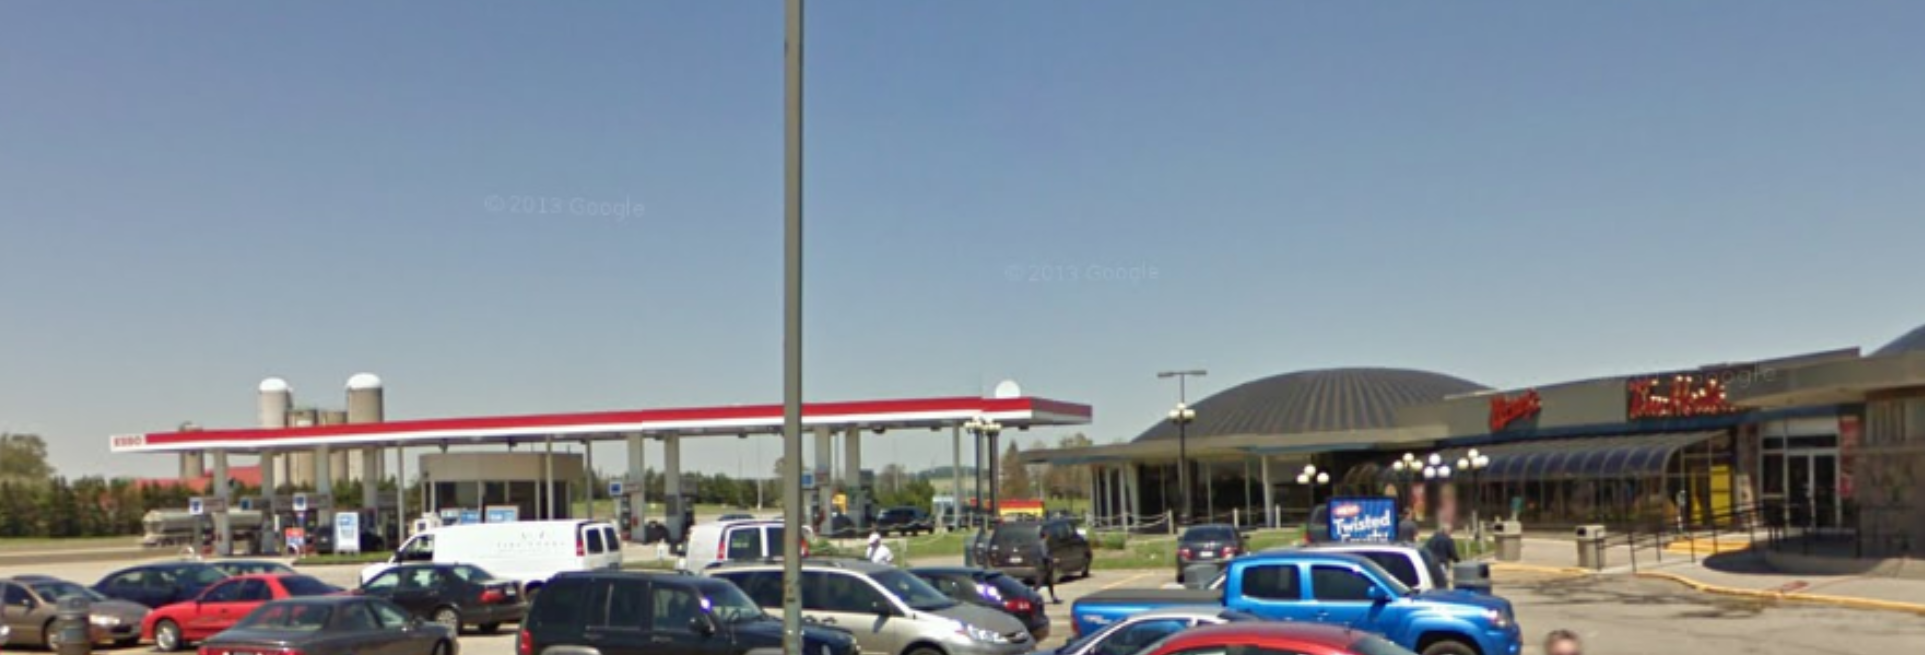 Spaceships of the 401 ottawa rewind the same rest stop drastically altered from the original note same farm in background publicscrutiny Choice Image